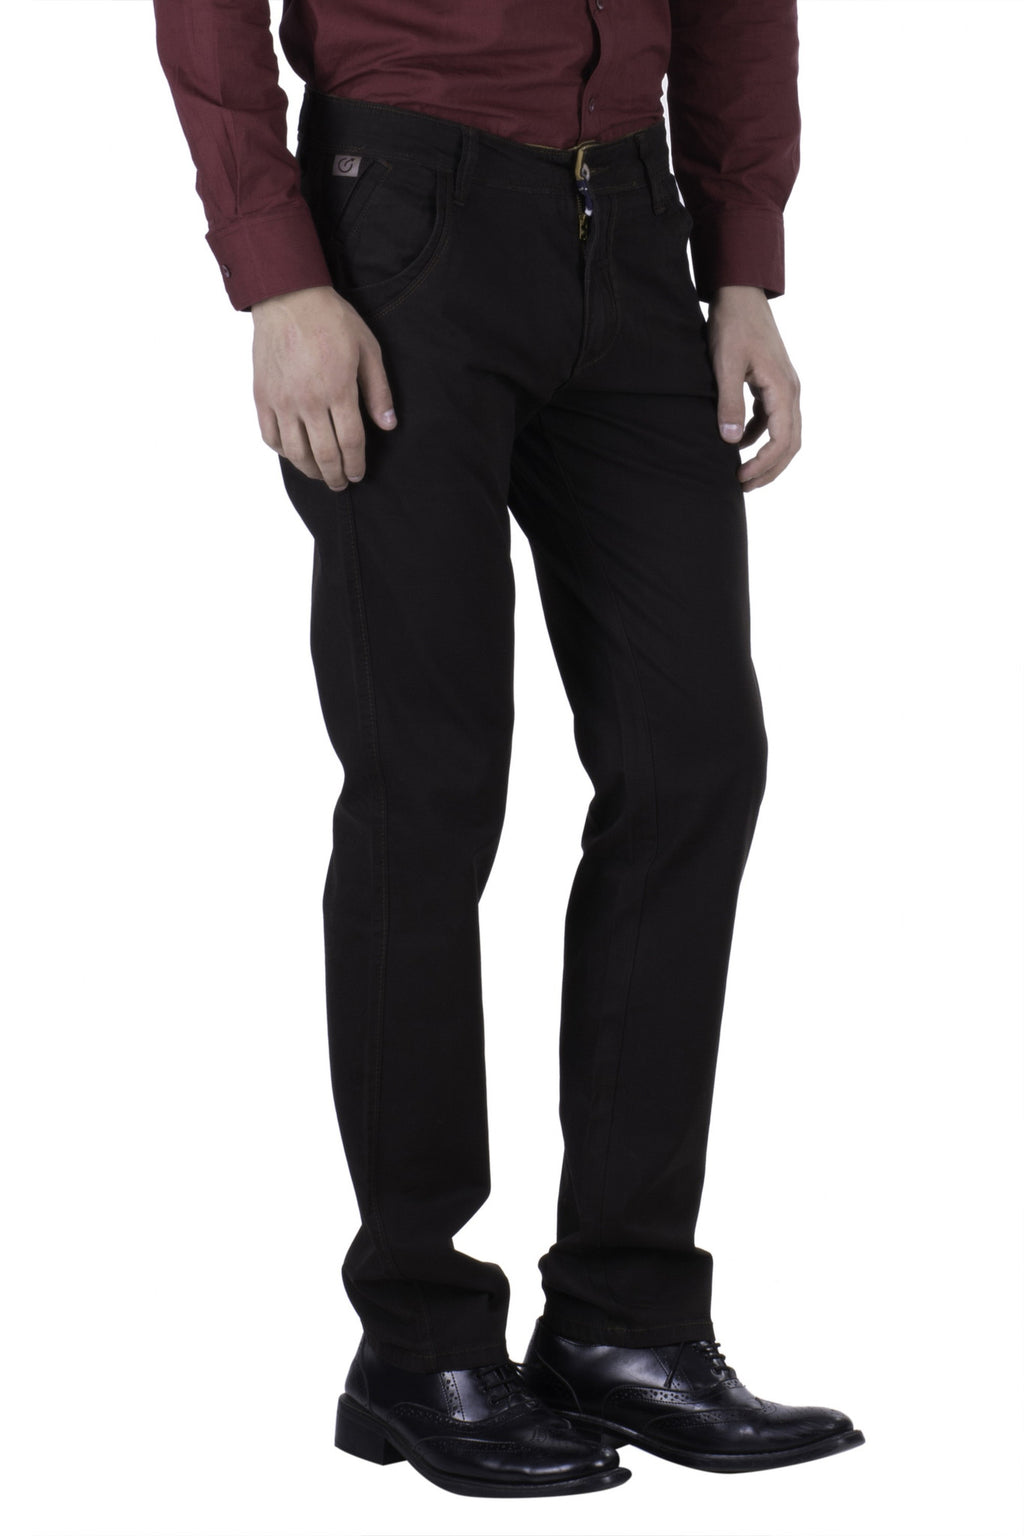 Hoffmen Slim Fit Men's Casual Trousers BC1050/03